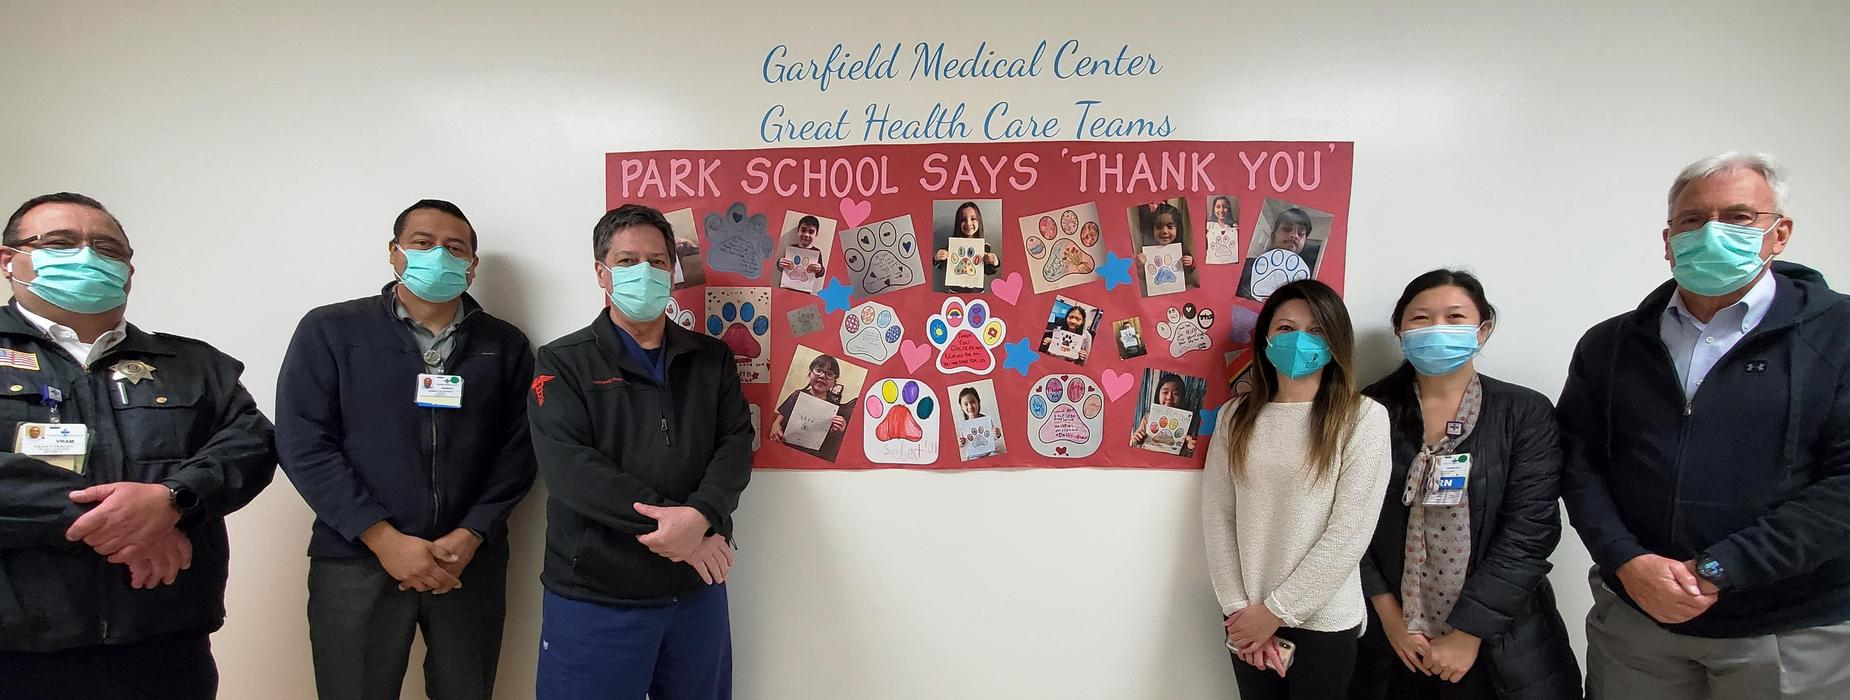 Park says Thank You to Garfield Medical Center Healthcare Workers